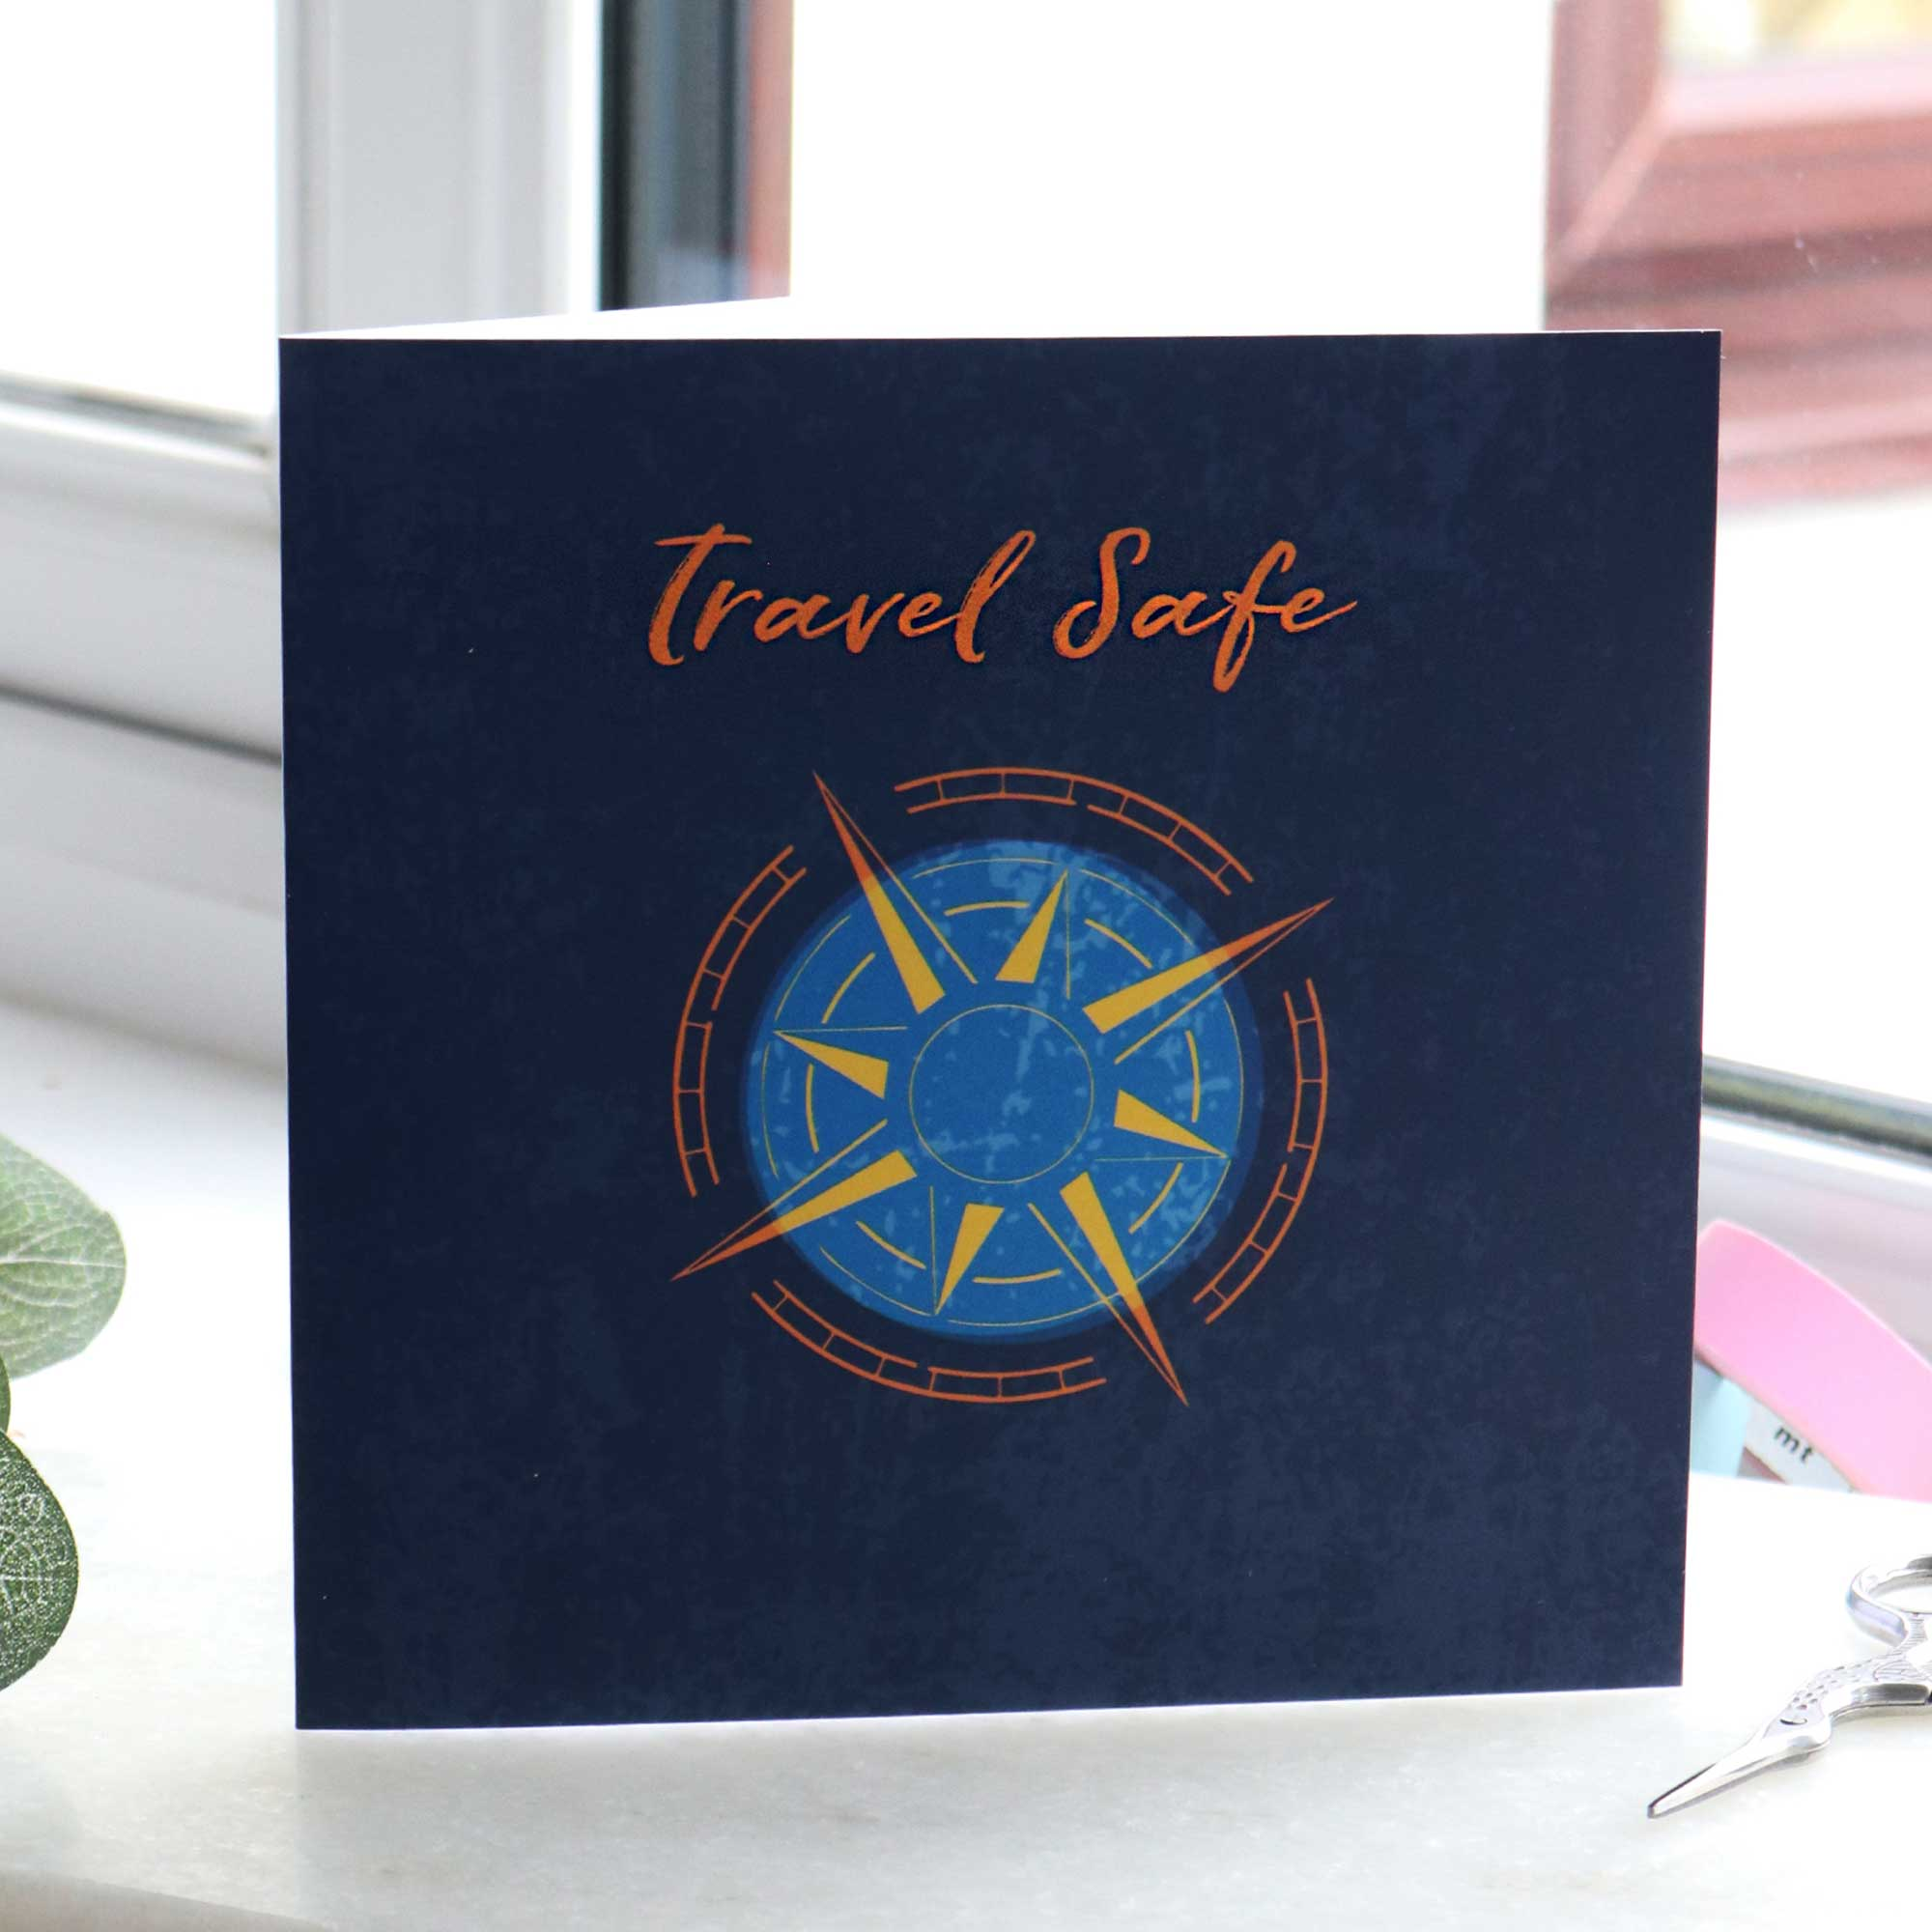 Travel safe going away gift card